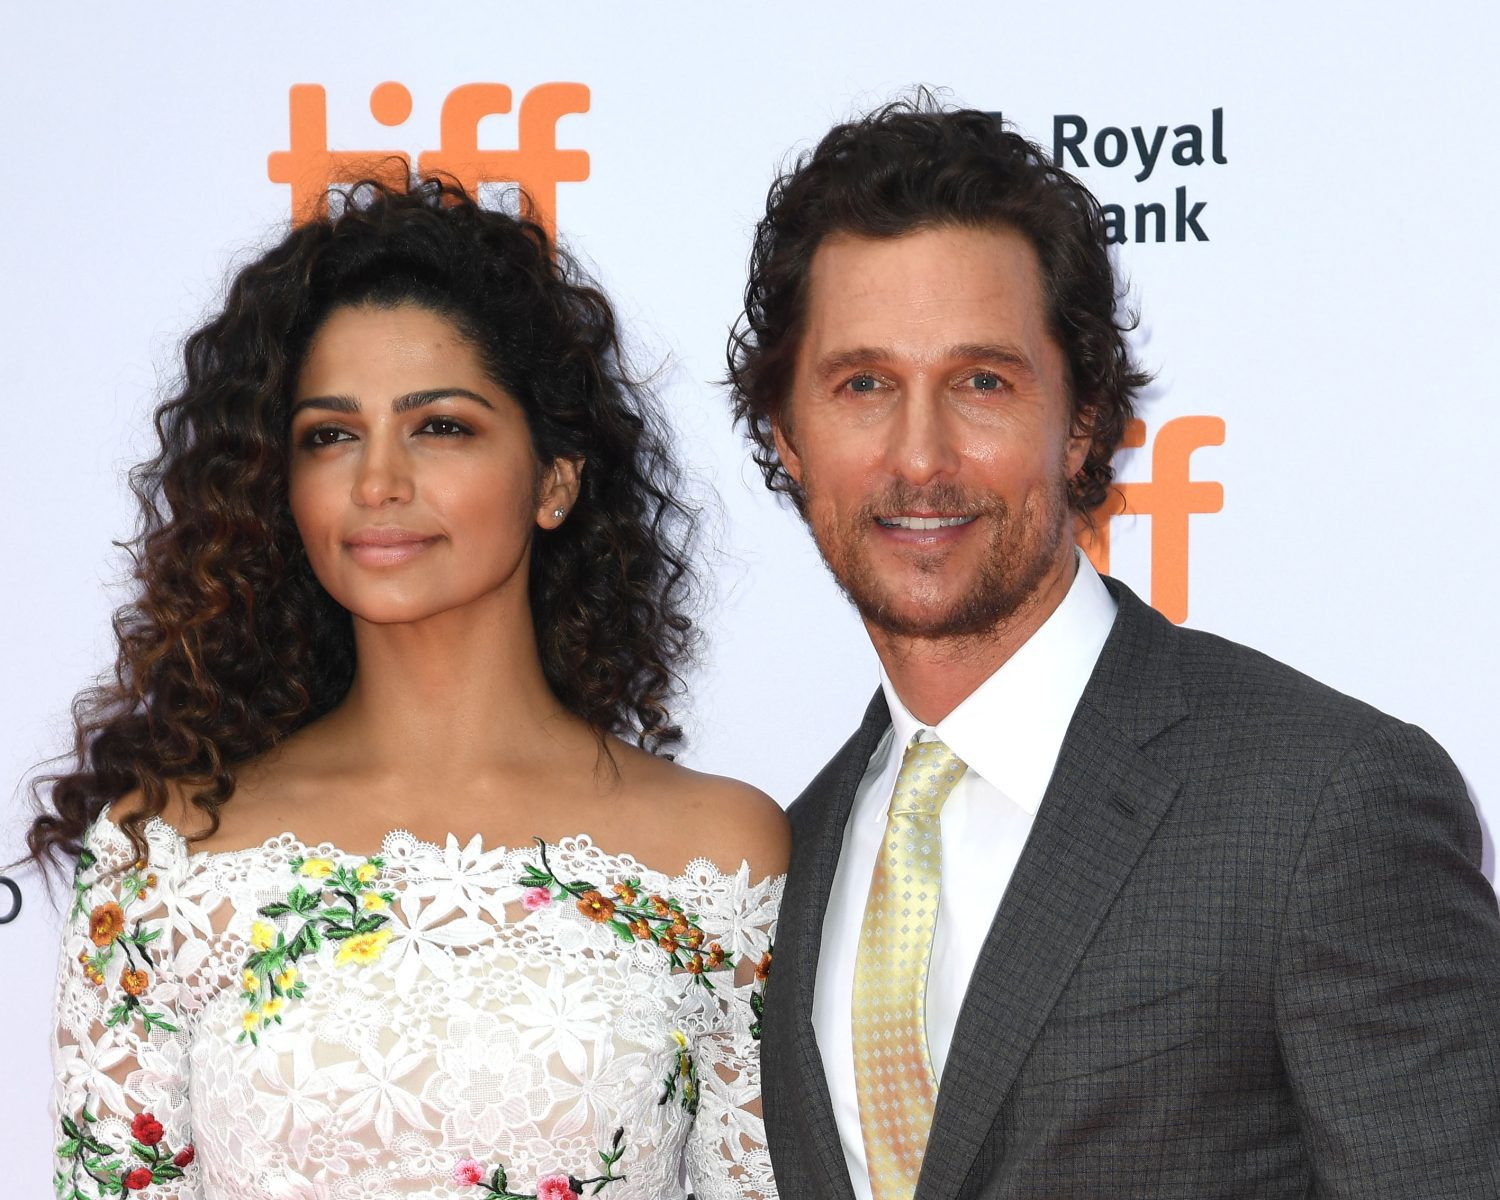 Matthew Mcconaughey Recalls His Proposal To Camila Alves